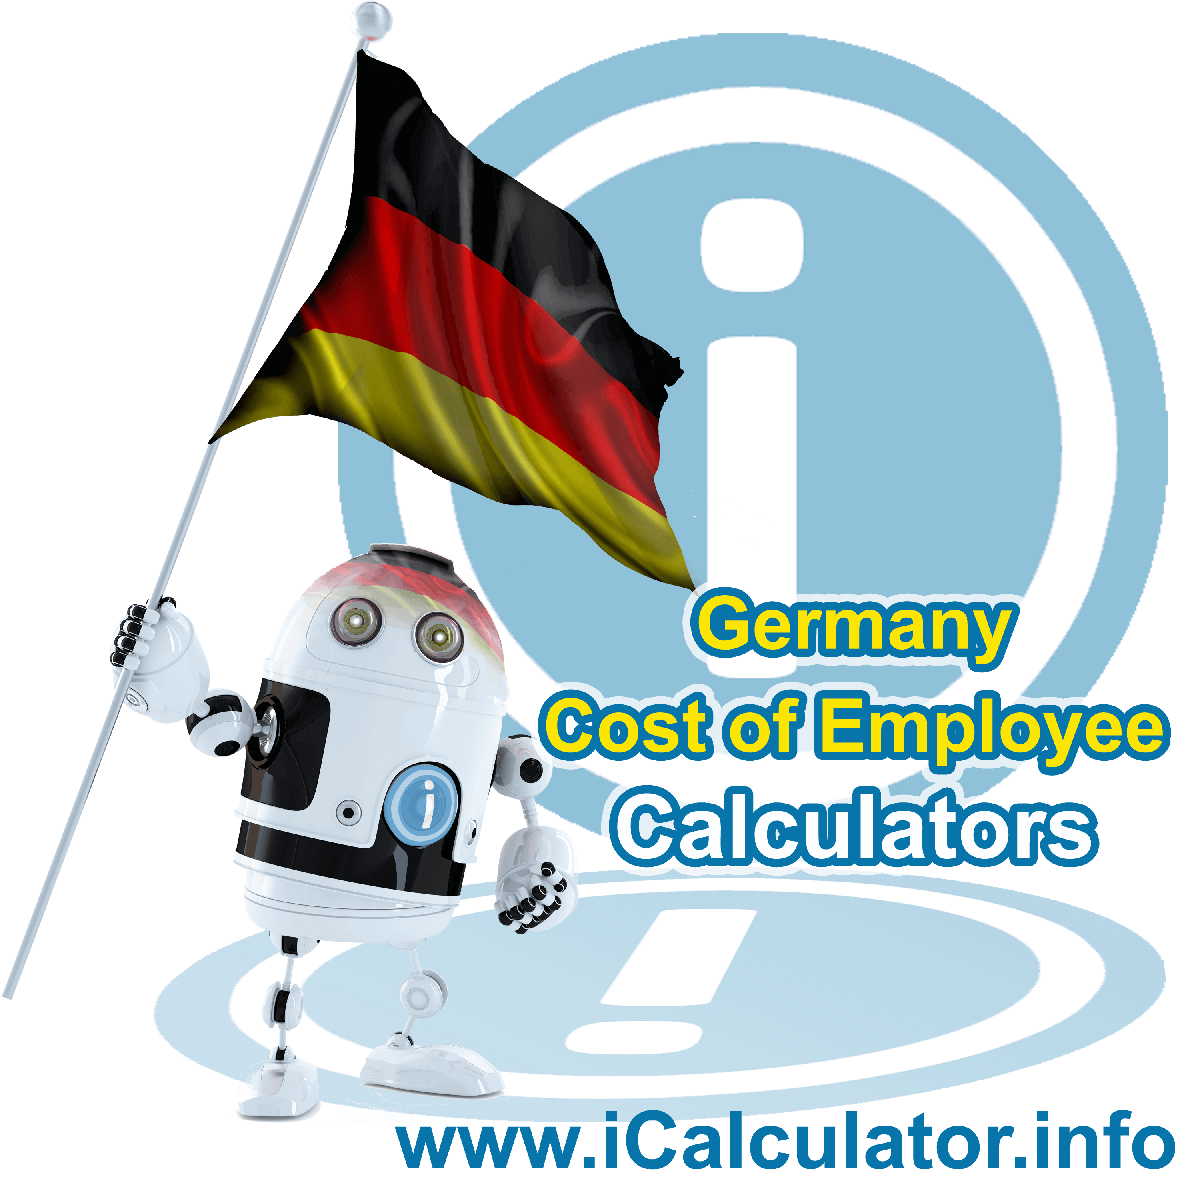 True Cost of an Employee in Germany Calculator. This image shows a new employer in Germany looking hiring a new employee, they calculate the cost of hiring an employee in Germany using the True Cost of an Employee in Germany calculator to understand their employment cost in Germany in 2016